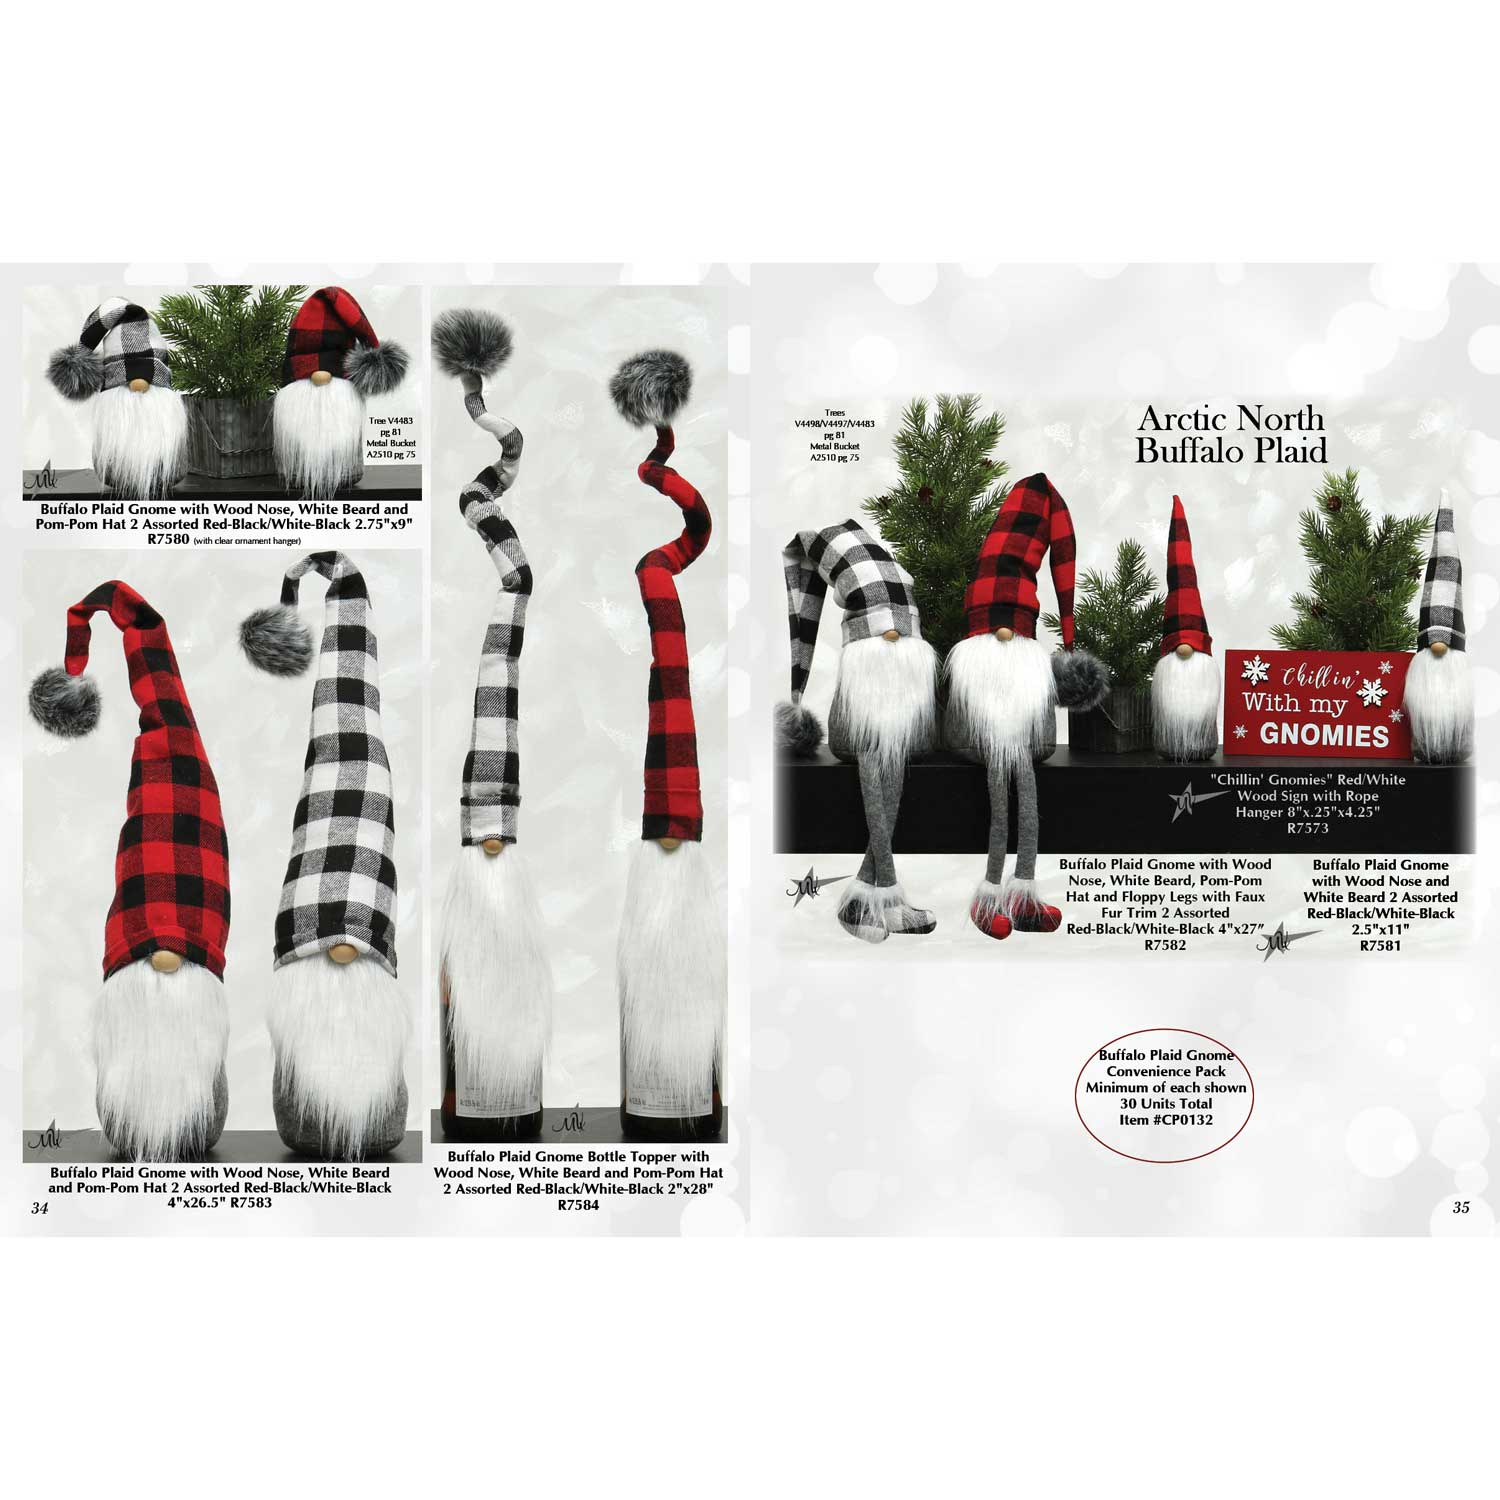 Buffalo Plaid Gnome Convenience Pack